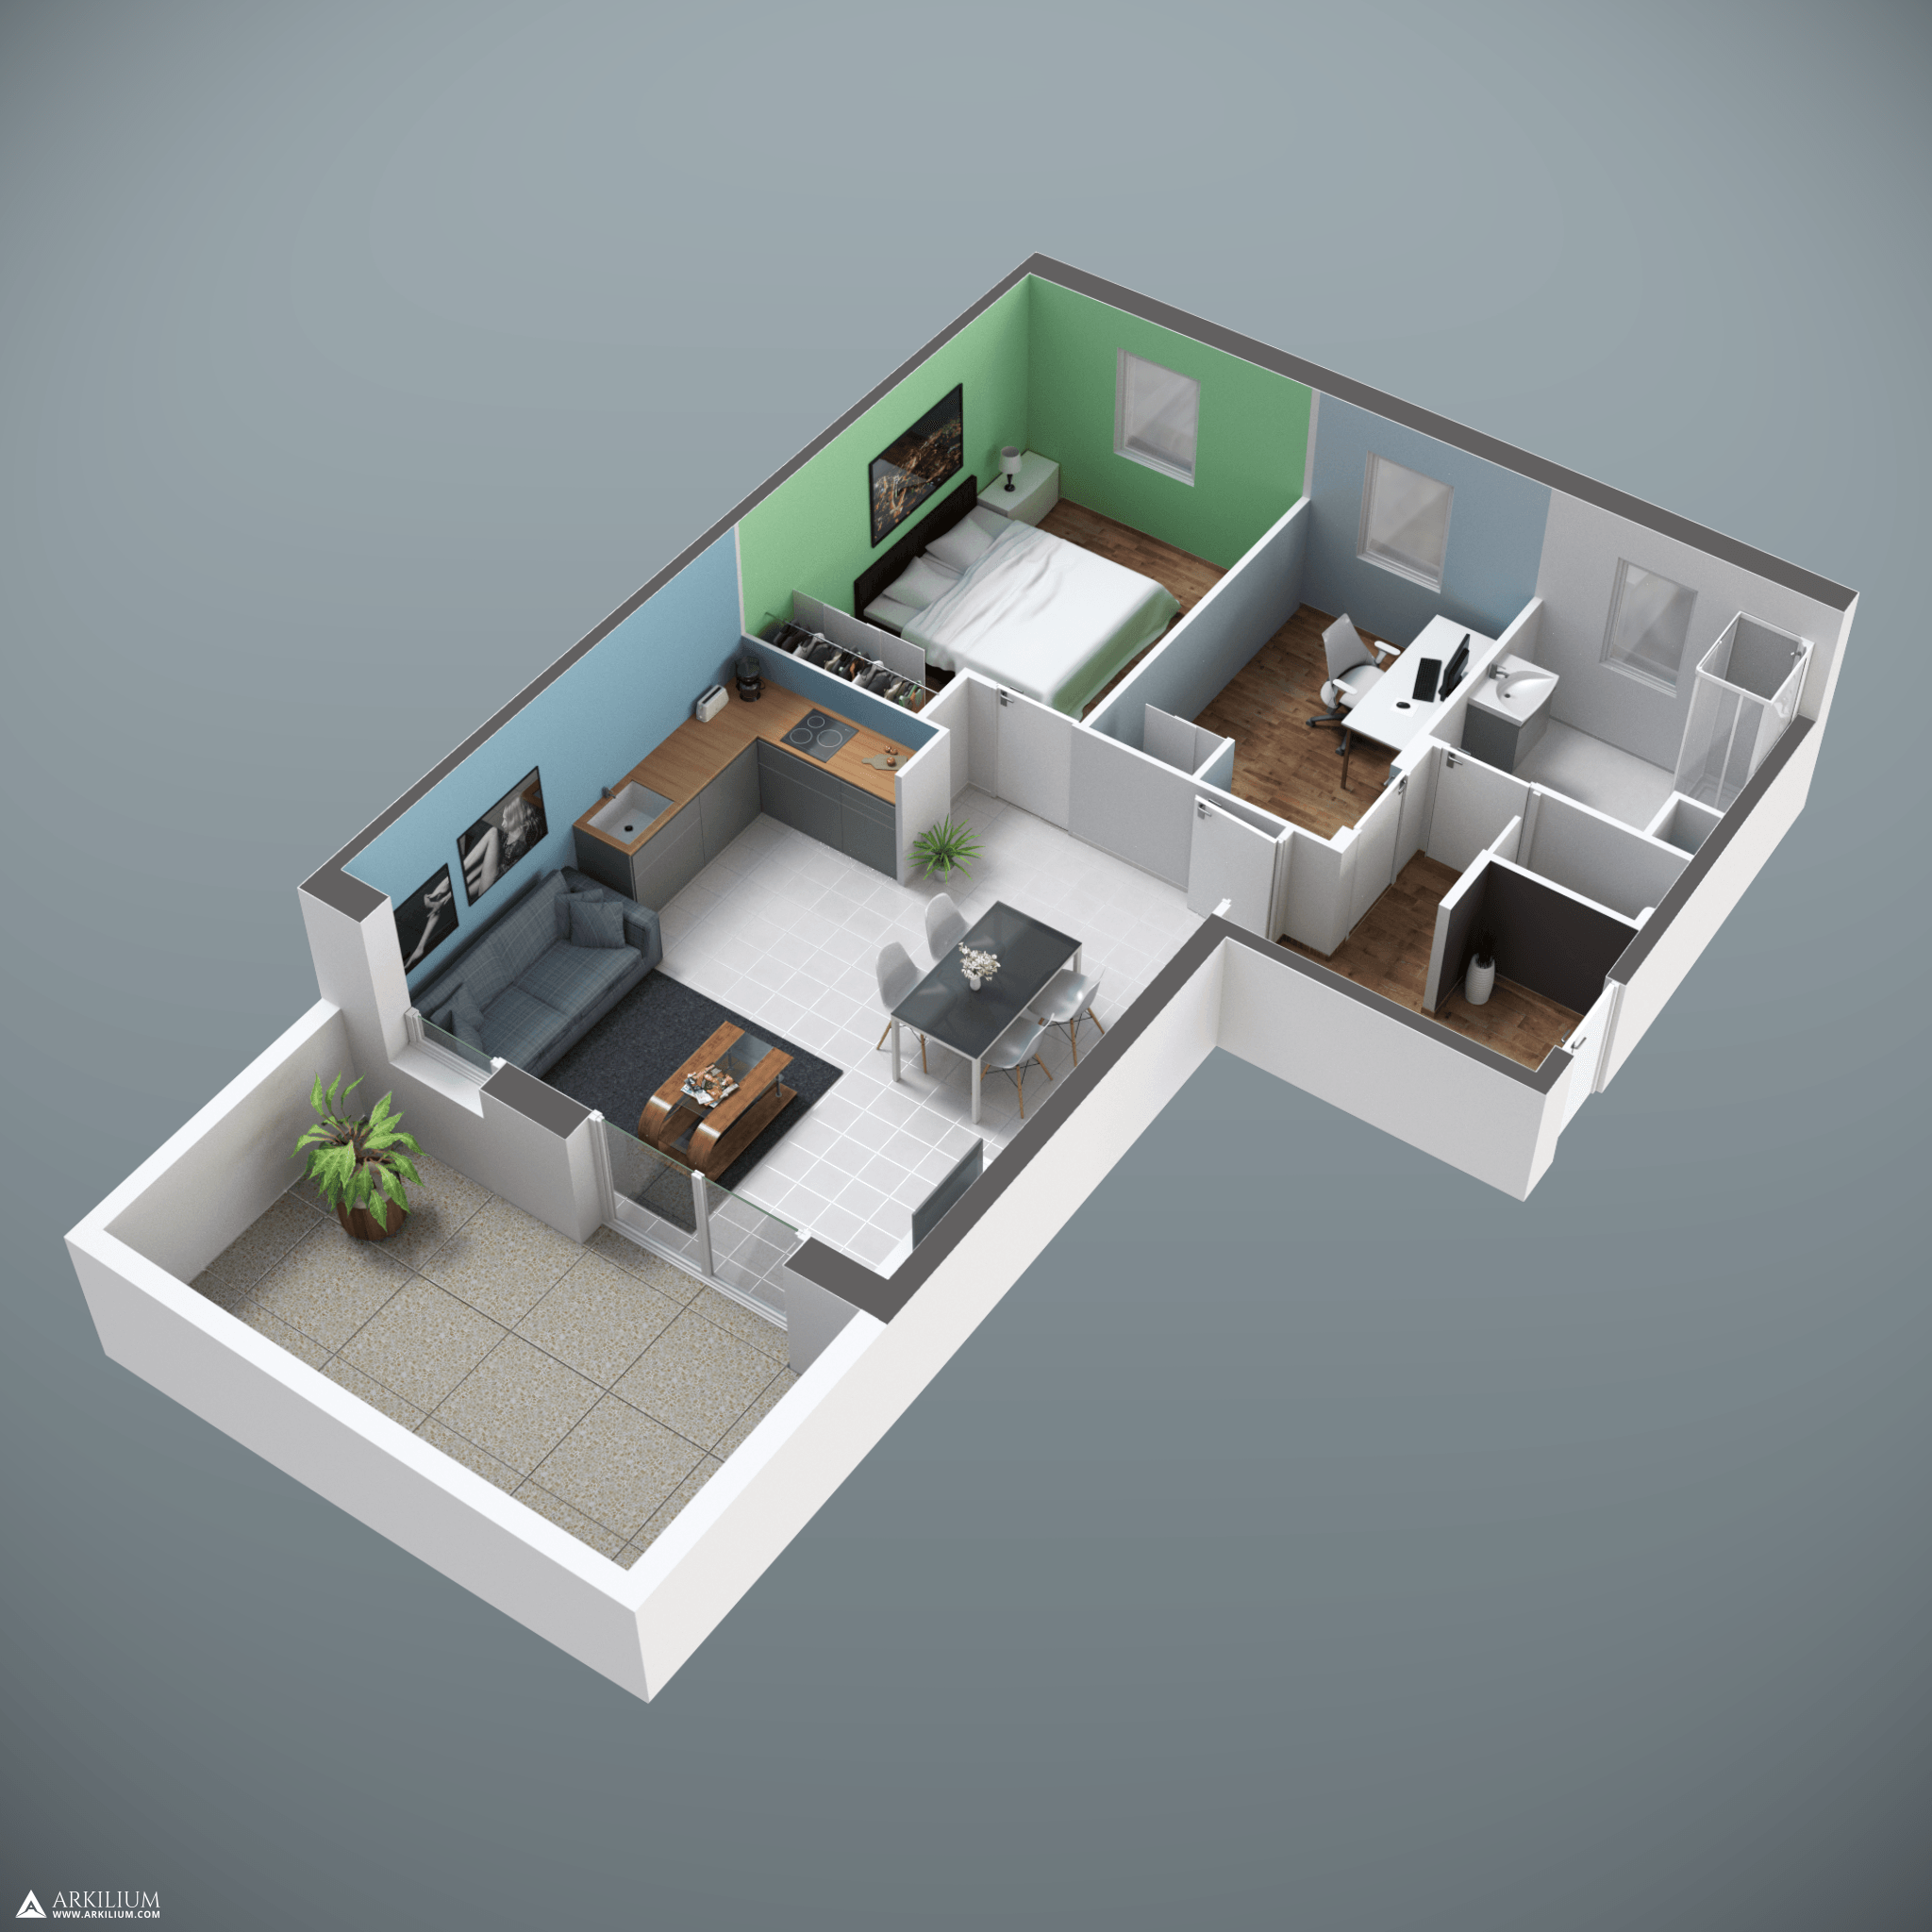 Photorealism 3d Blueprint Of An Apartment On Blender Cycles Www Arkilium Com 3d Rendering